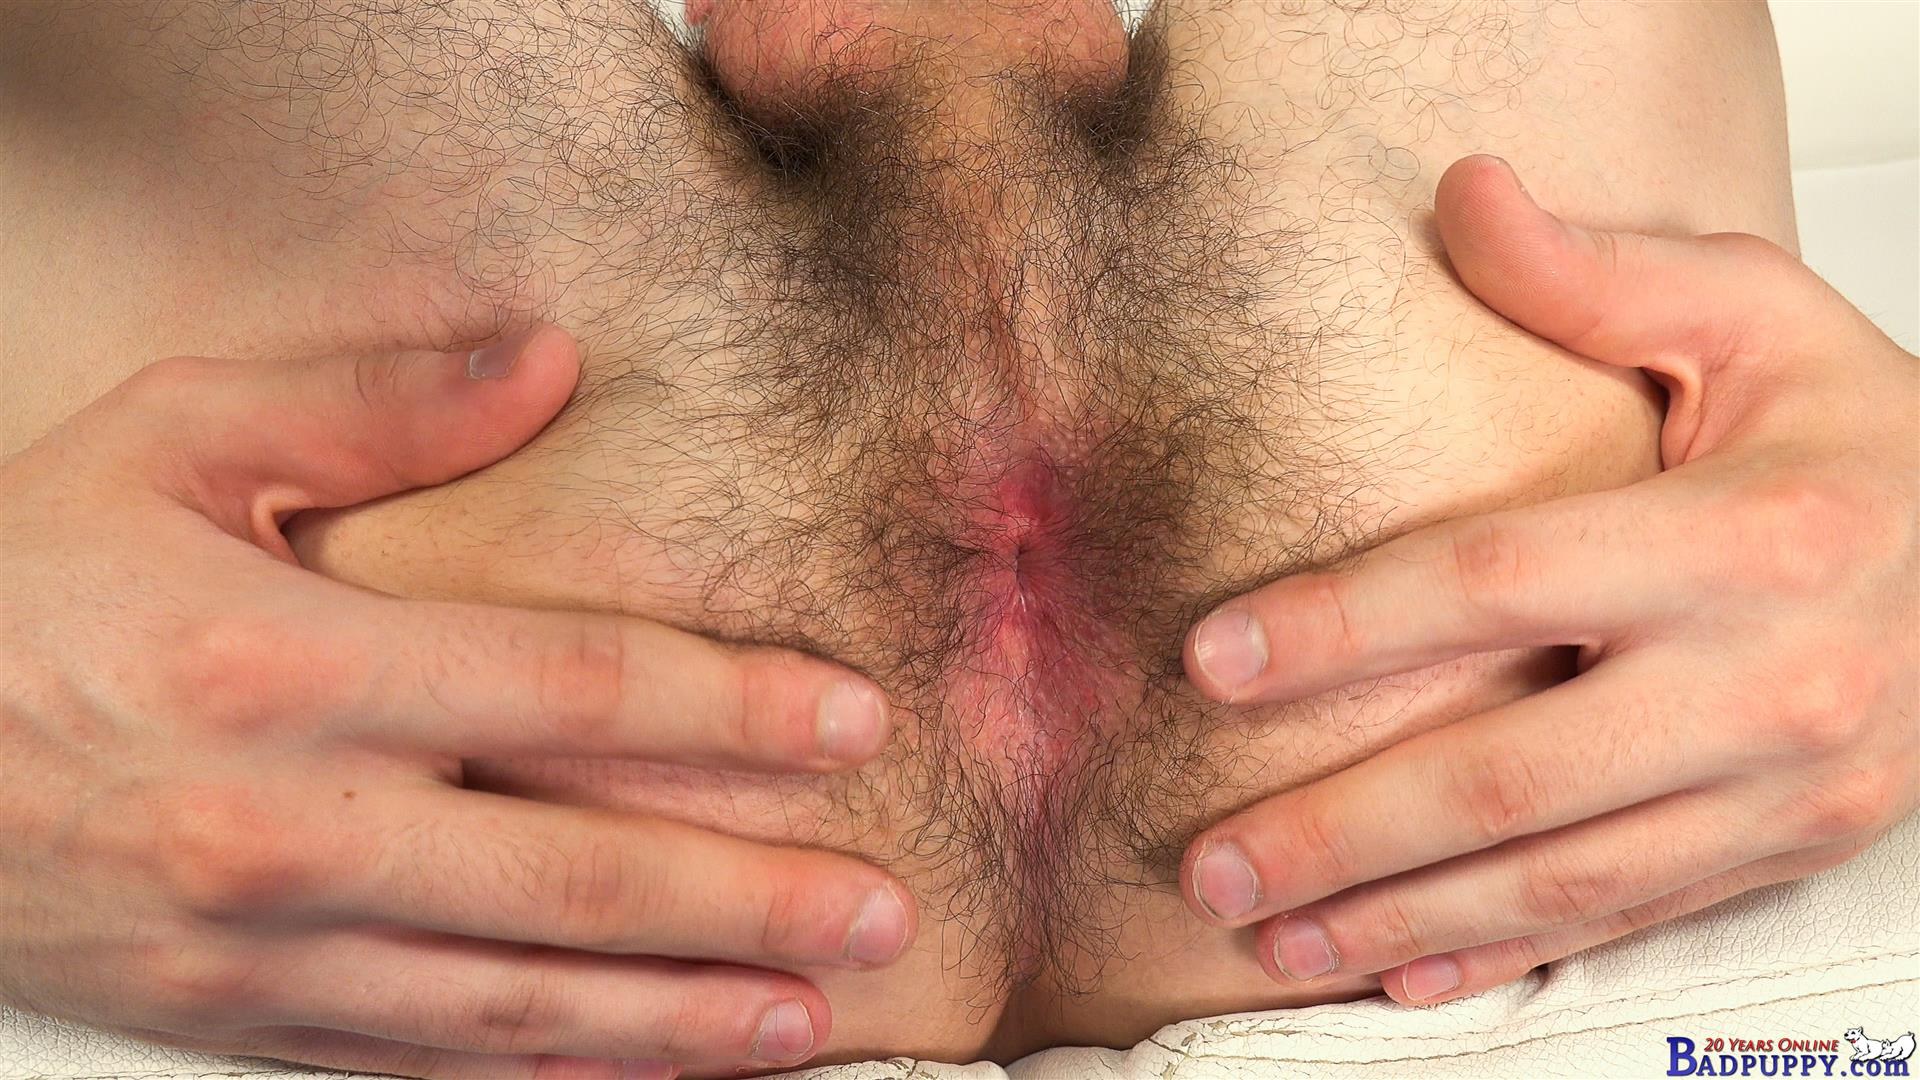 Valer Starek Badpuppy Masturbation Big Uncut Cock Hairy Ass Amateur Gay Porn 19 Young Czech Guy Auditions For Gay Porn With His Big Uncut Cock And Hairy Ass